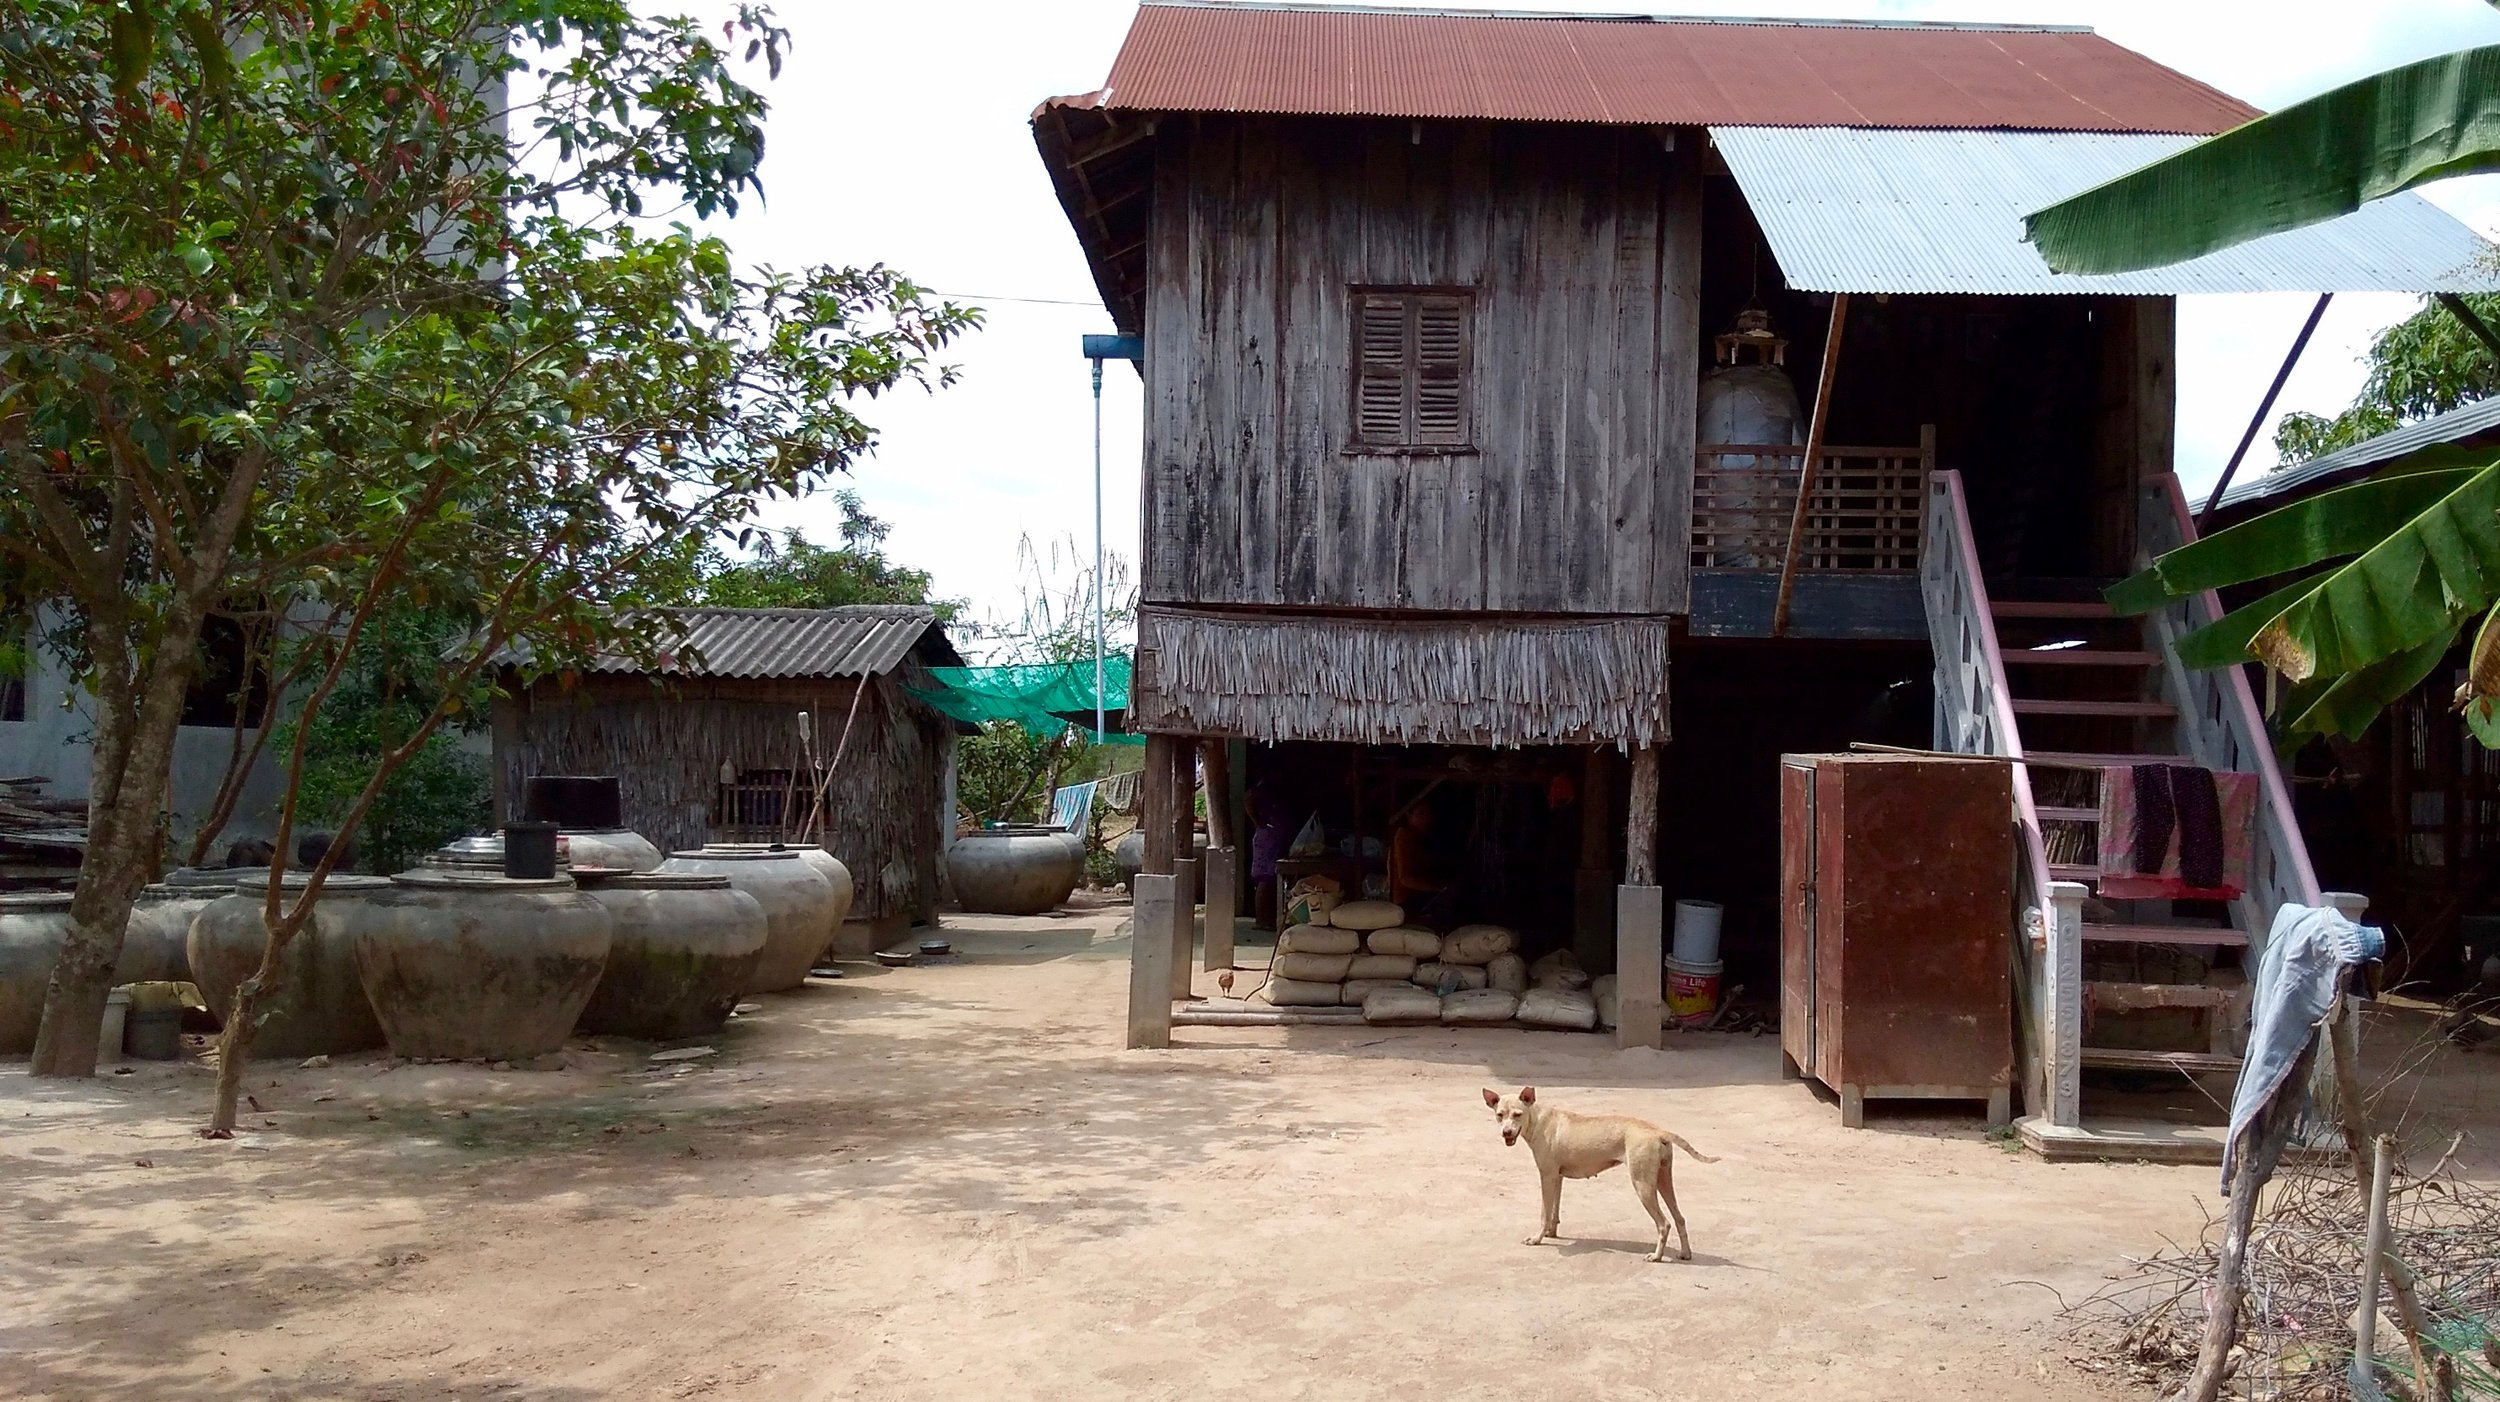 A traditional Cambodian wooden stilt home, where weavers work at looms underneath their house.